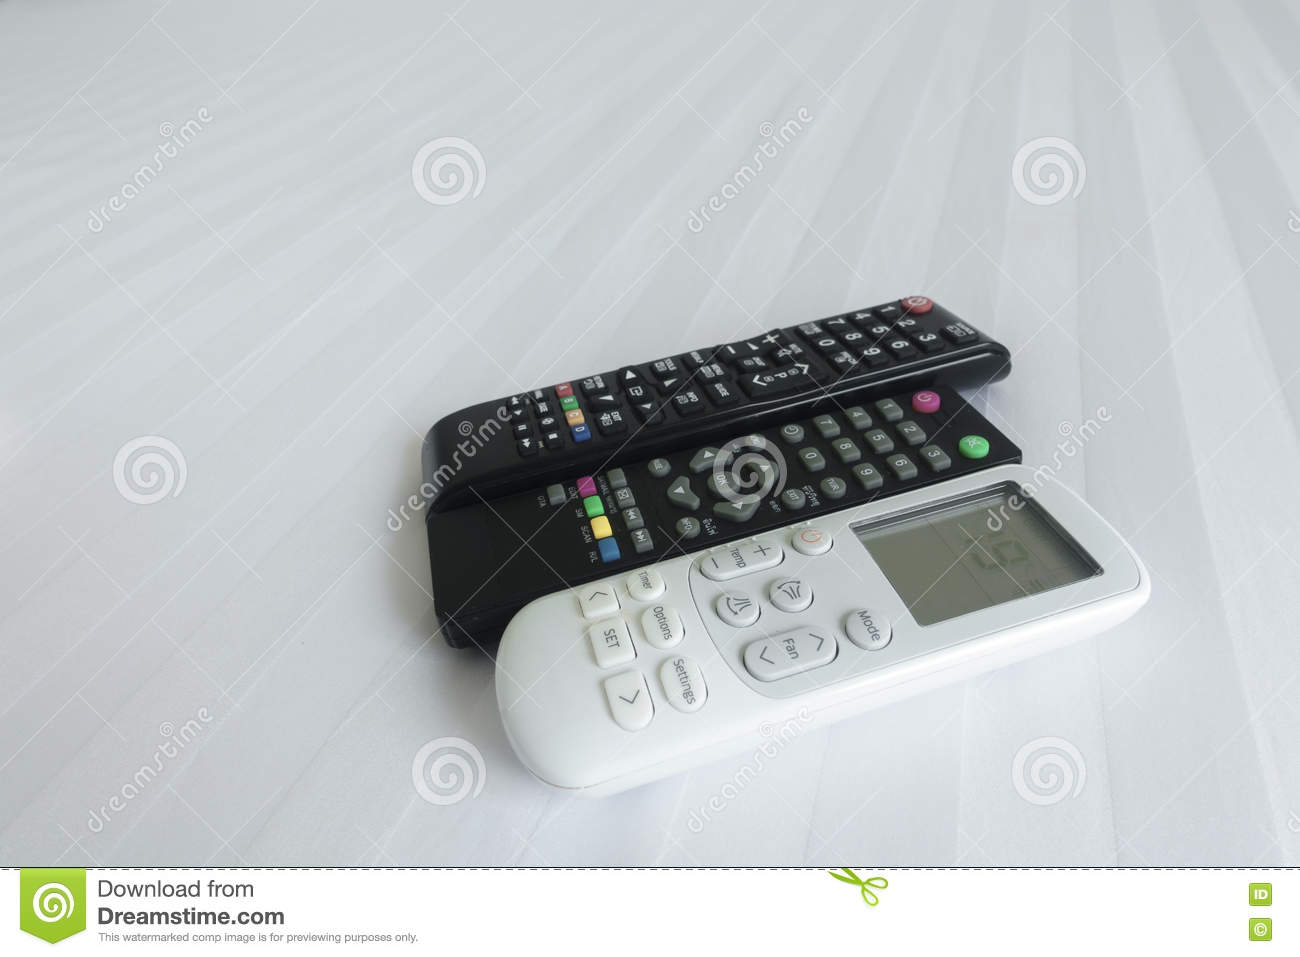 remote control on Bed linen